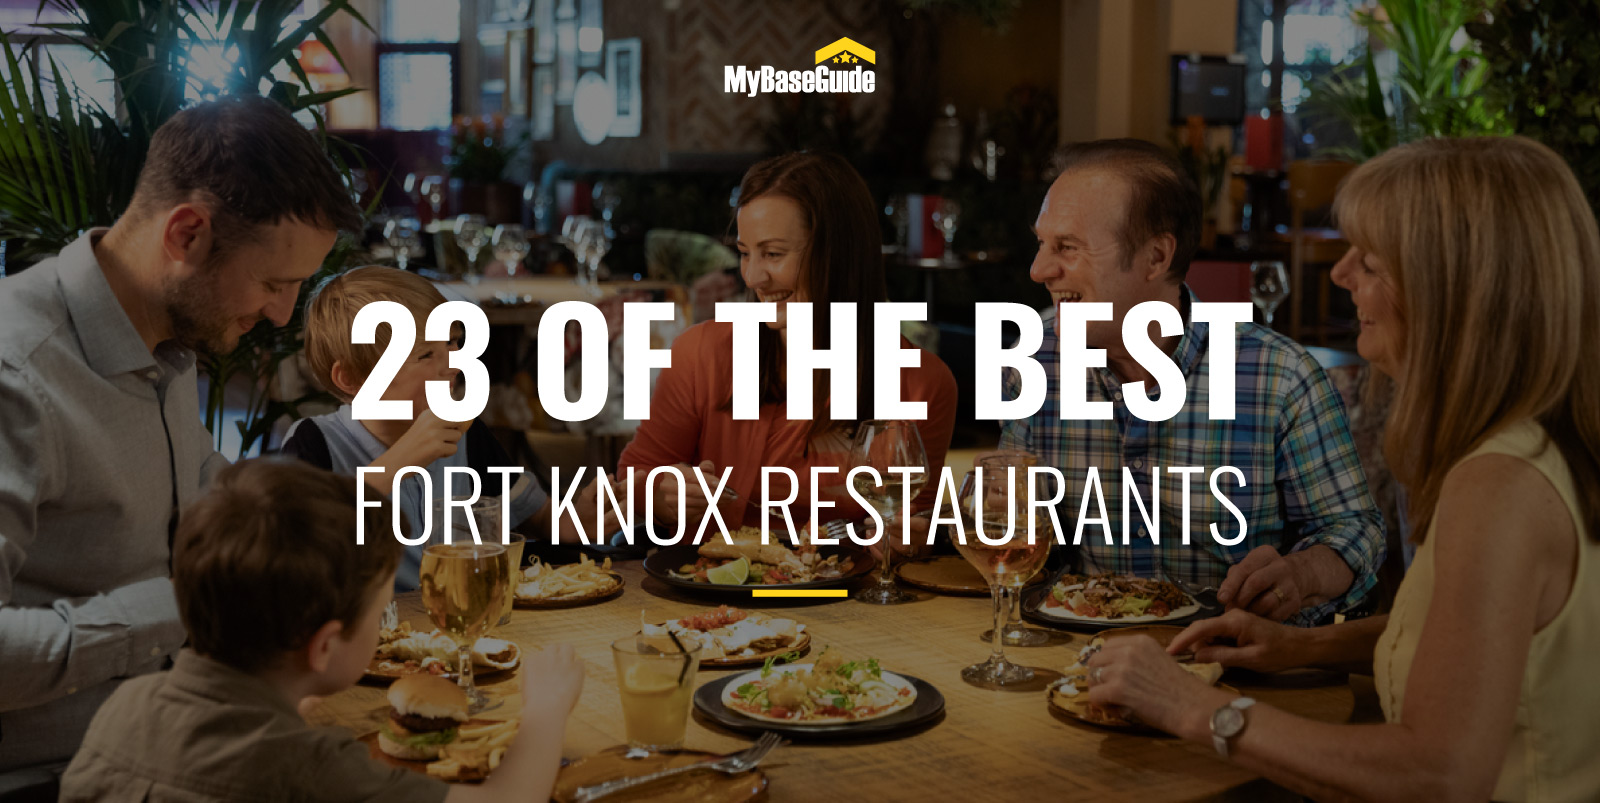 23 of the Best Fort Knox Restaurants